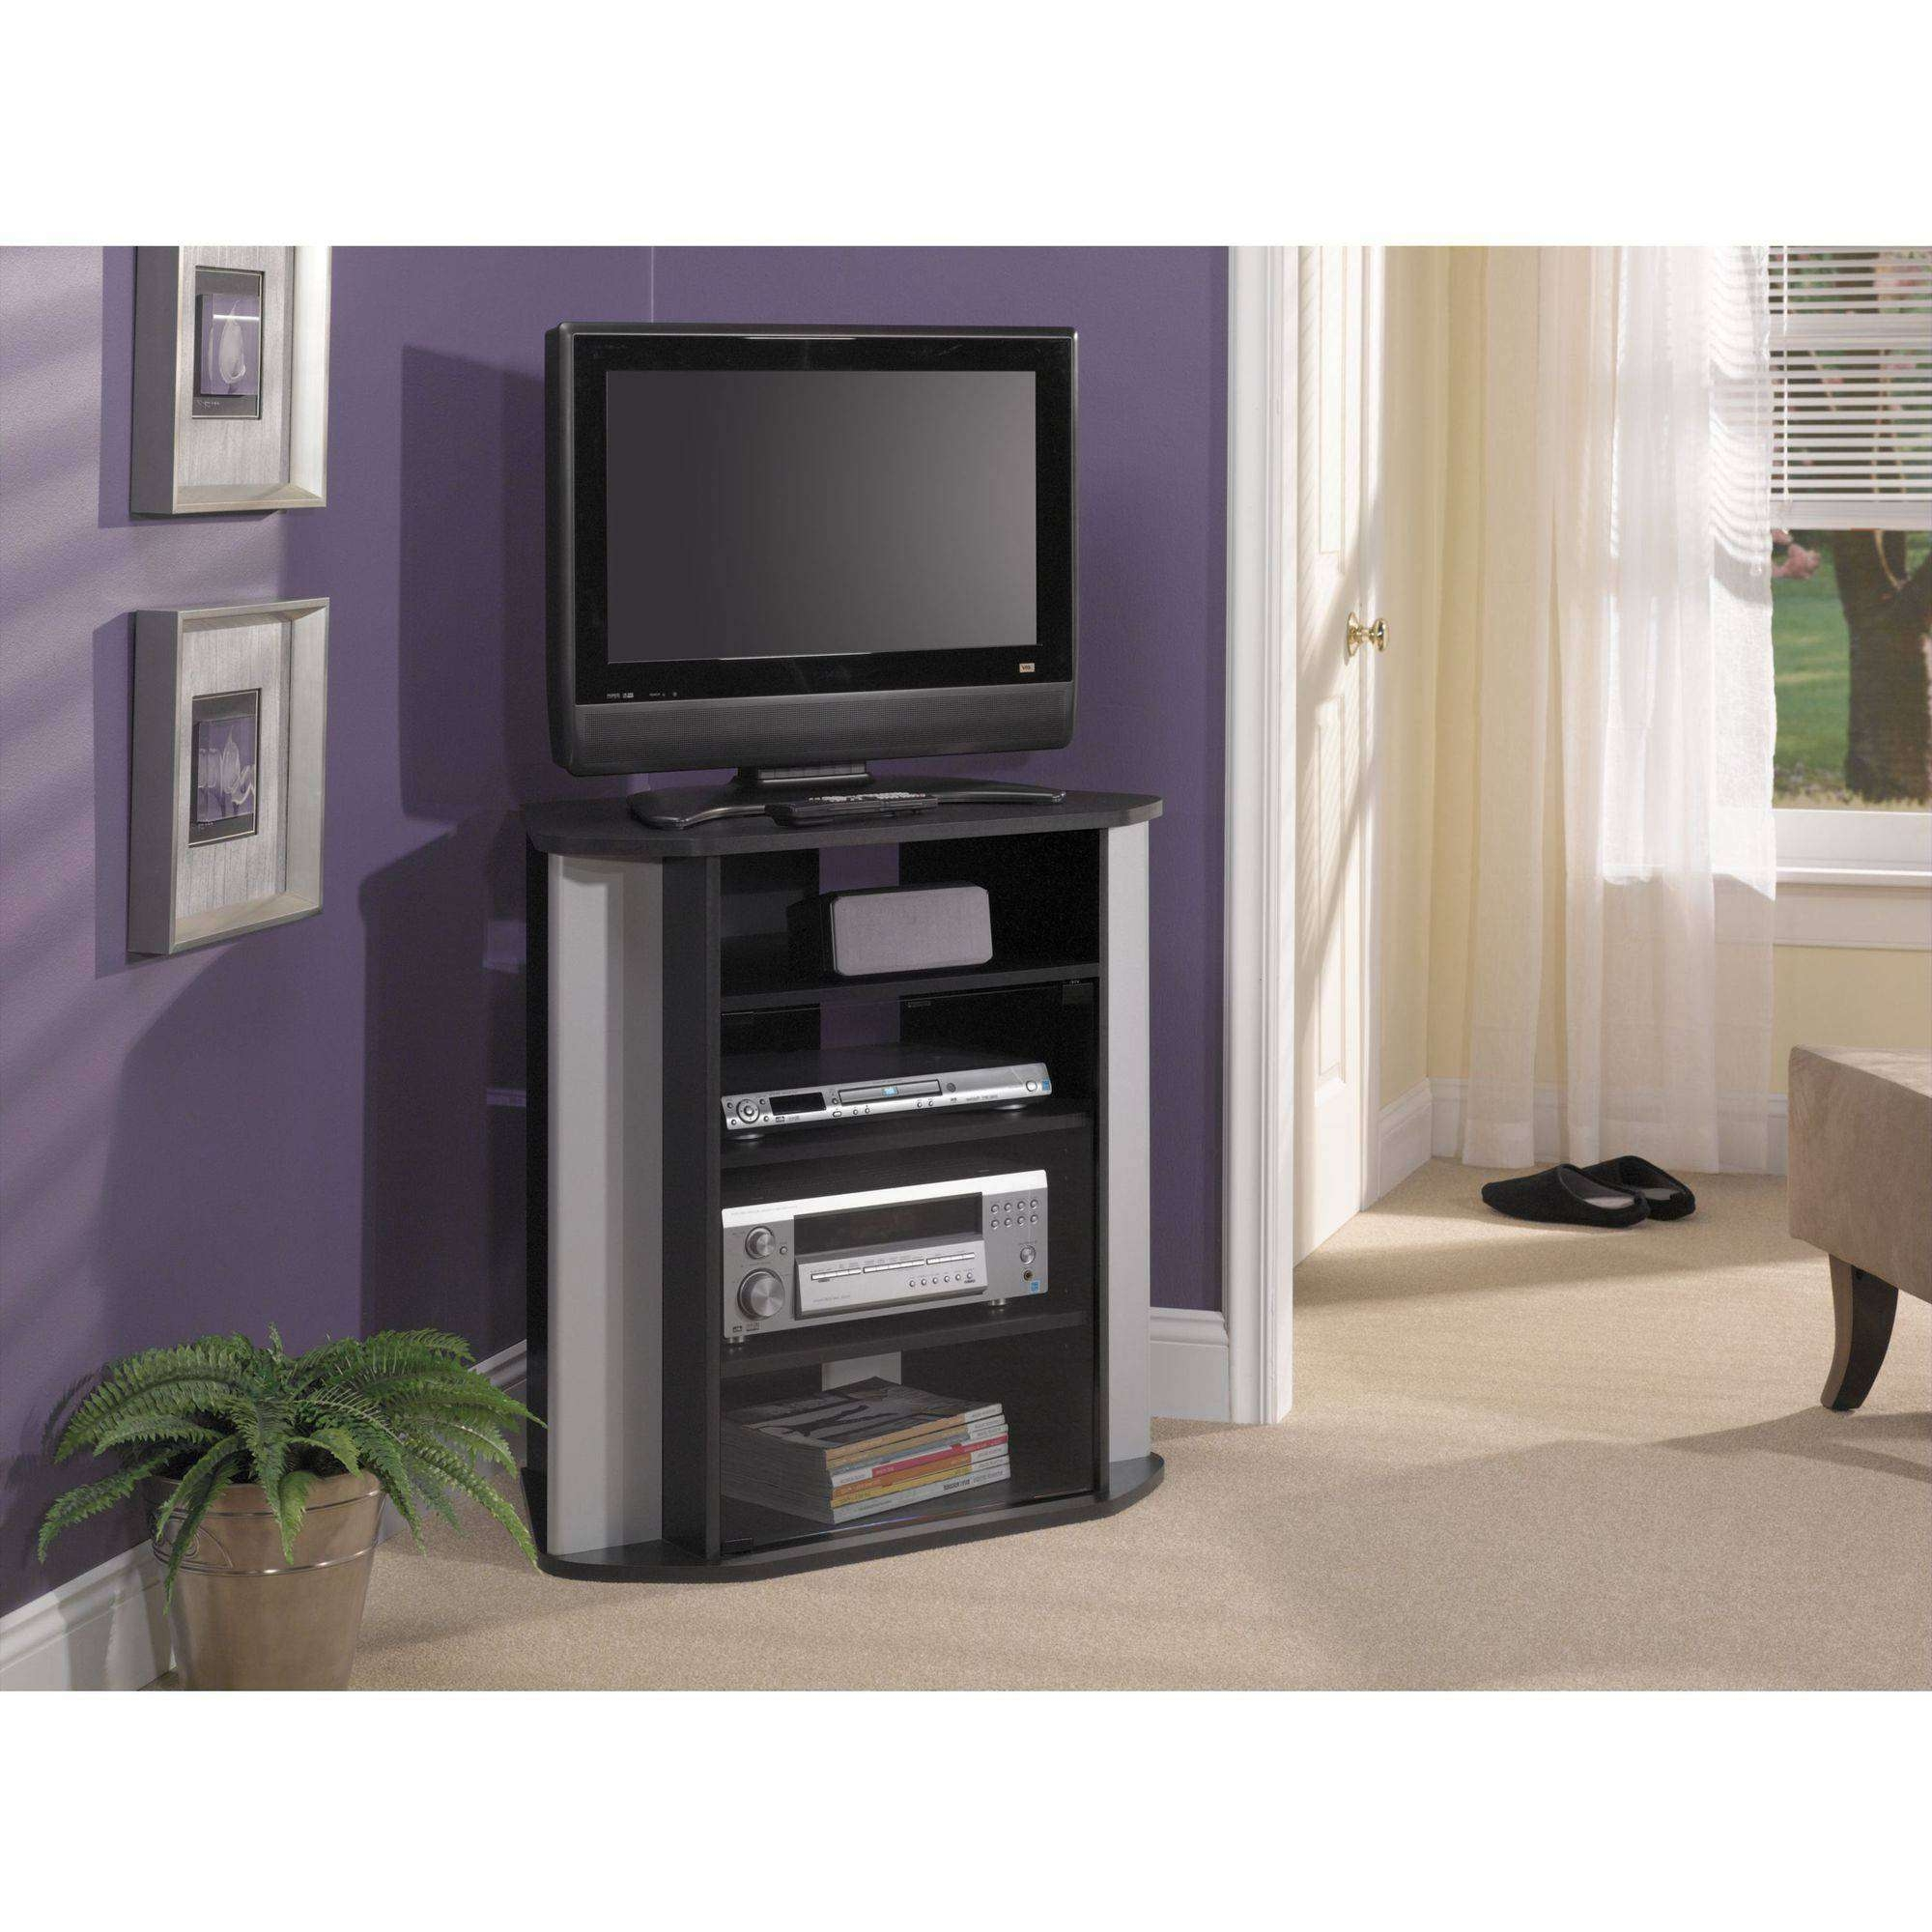 Bush Visions Black Tall Corner Tv Stand, For Tvs Up To 37 With Regard To Contemporary Corner Tv Stands (View 2 of 15)